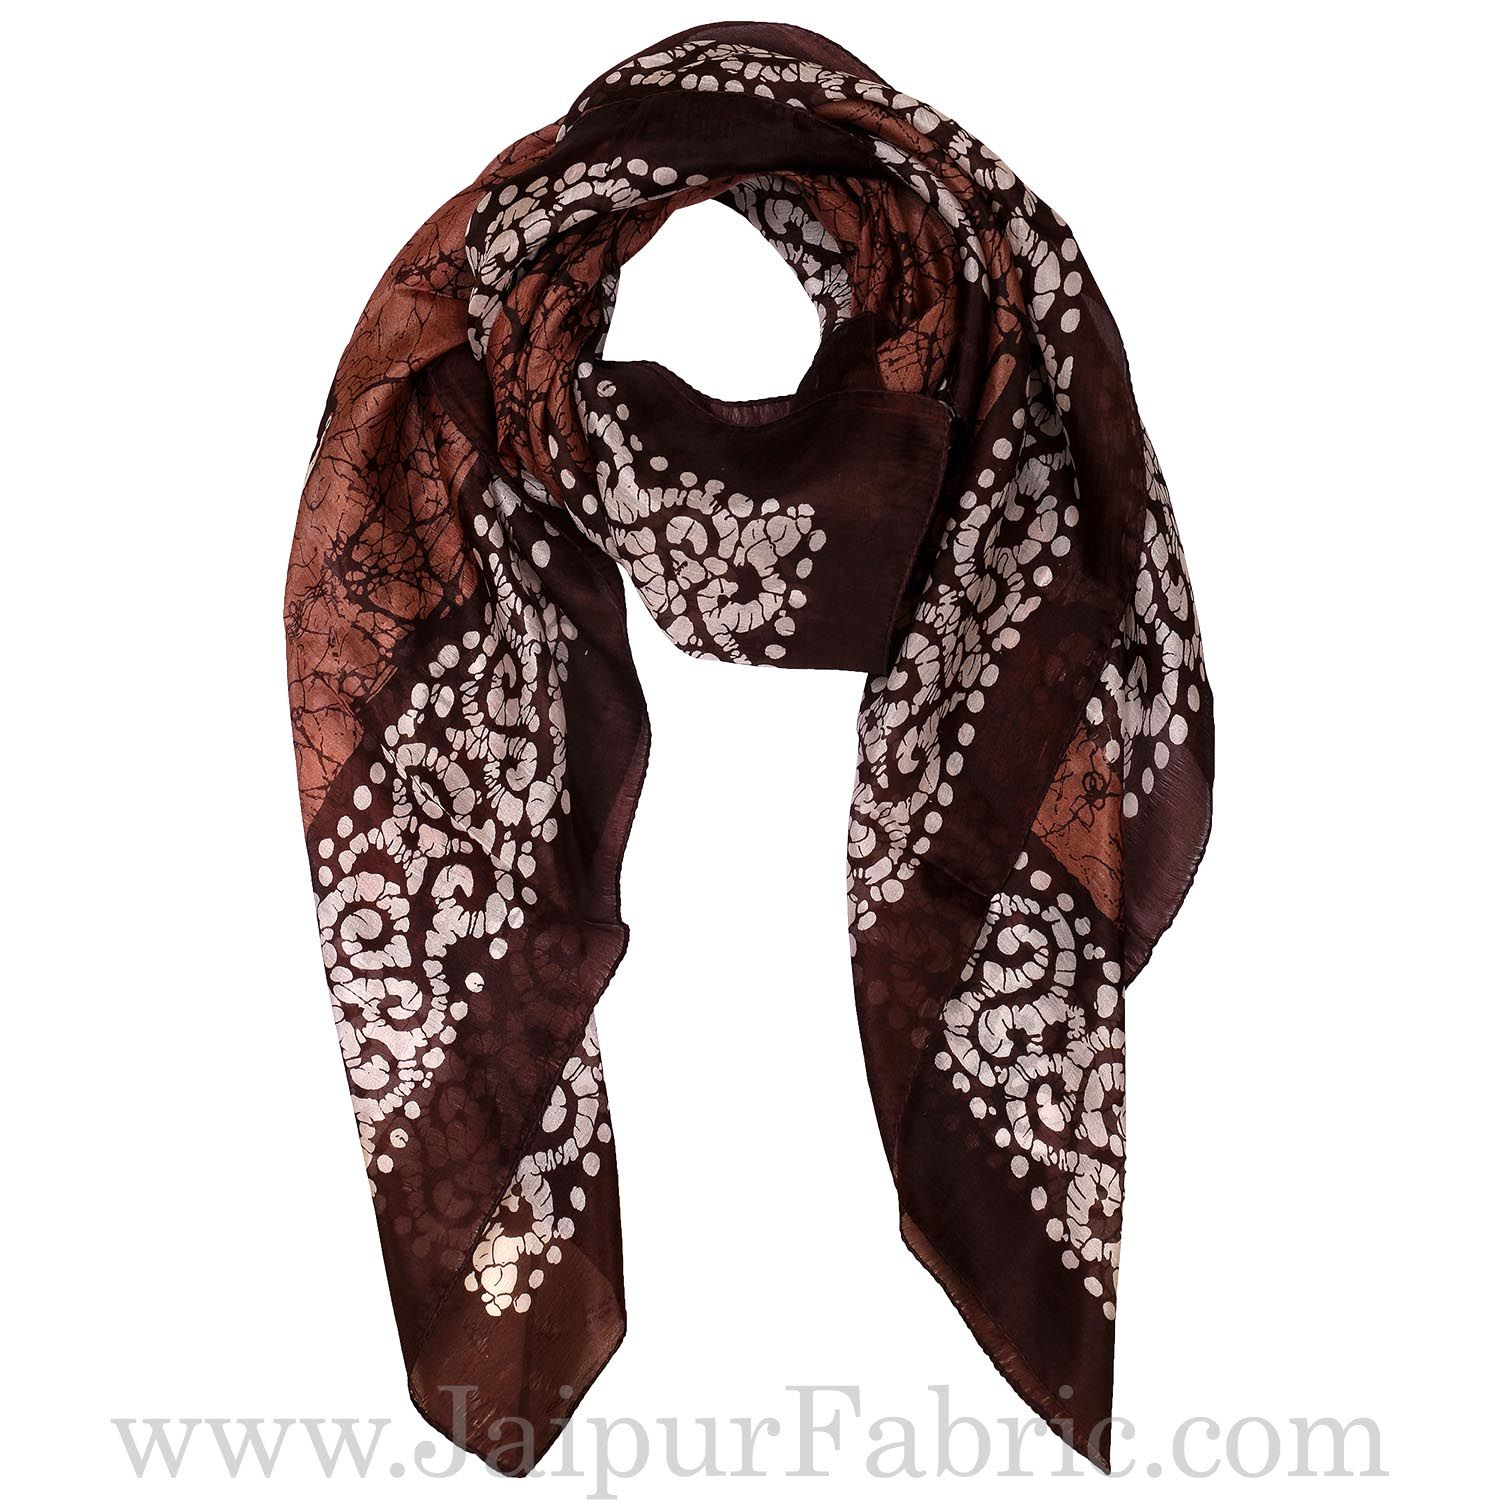 Silk Scarf with Bandhej design